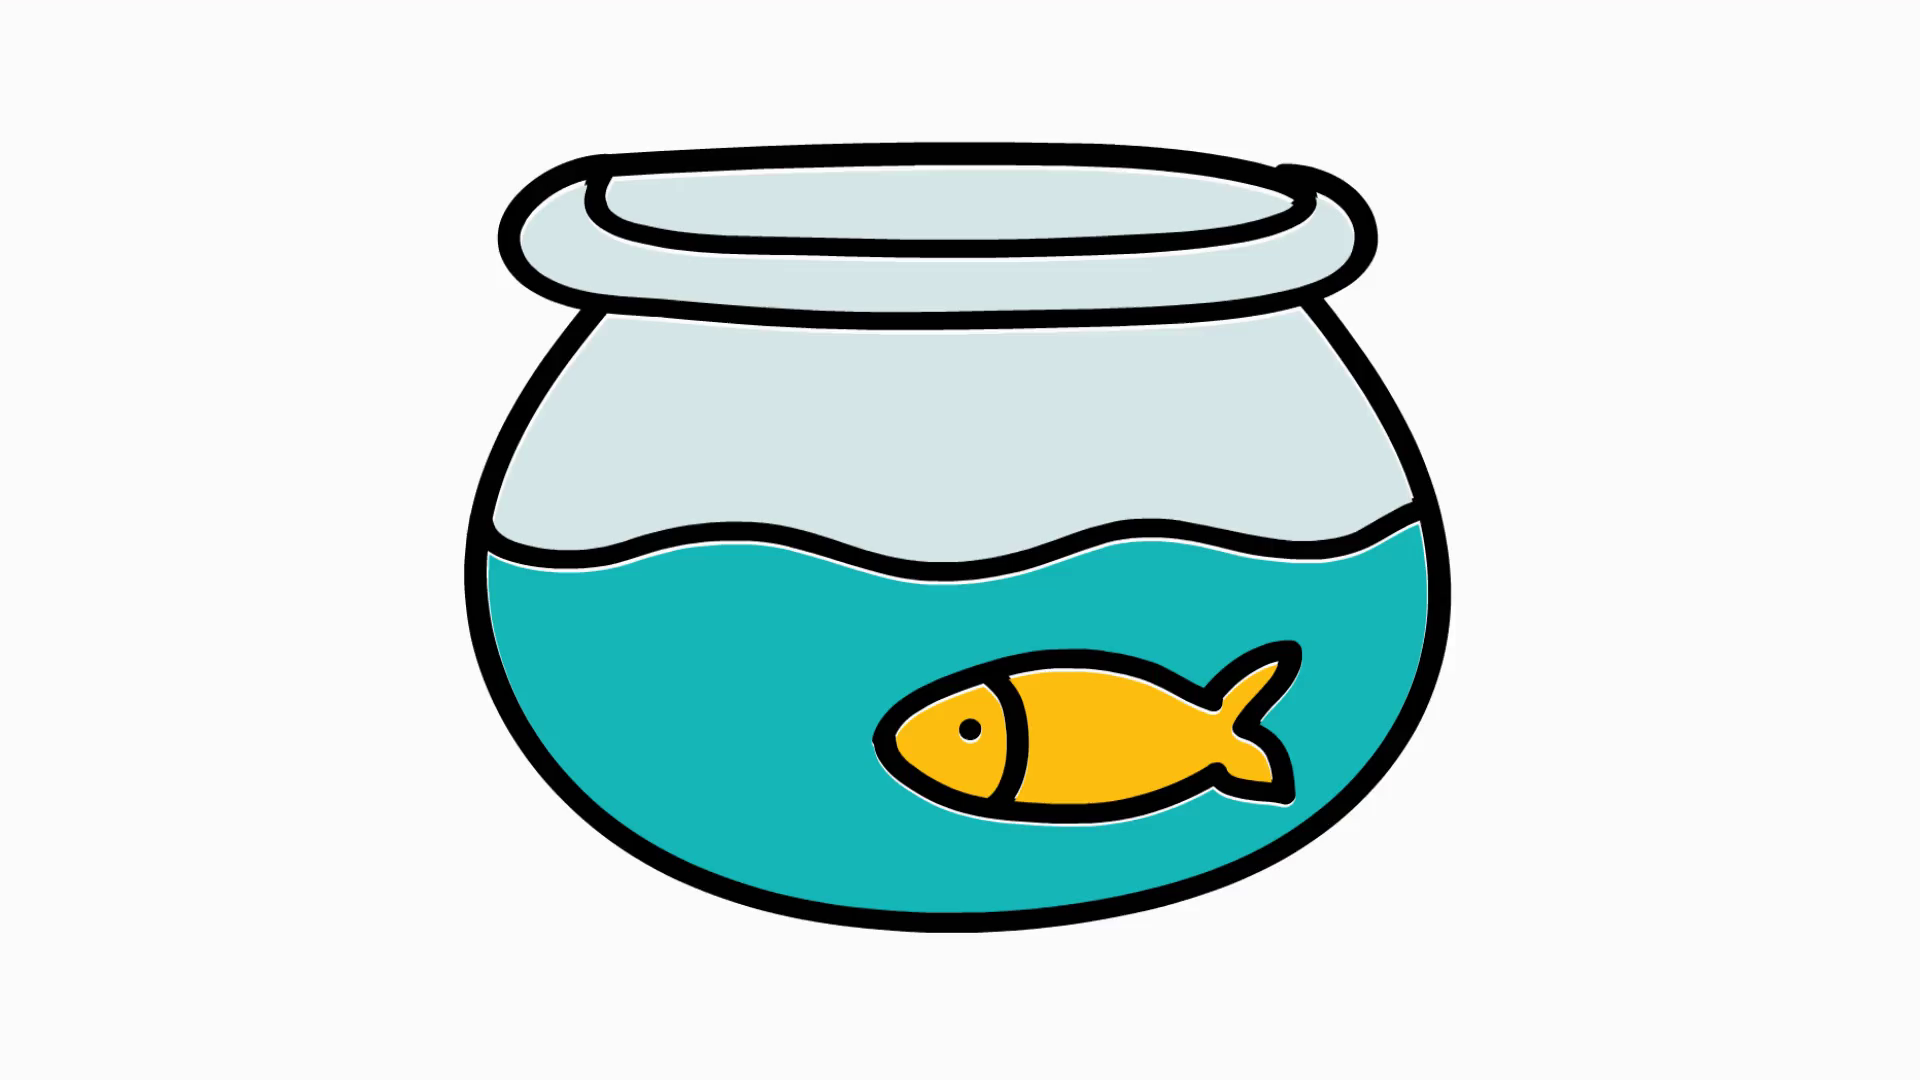 Bowl clipart animated, Bowl animated Transparent FREE for.